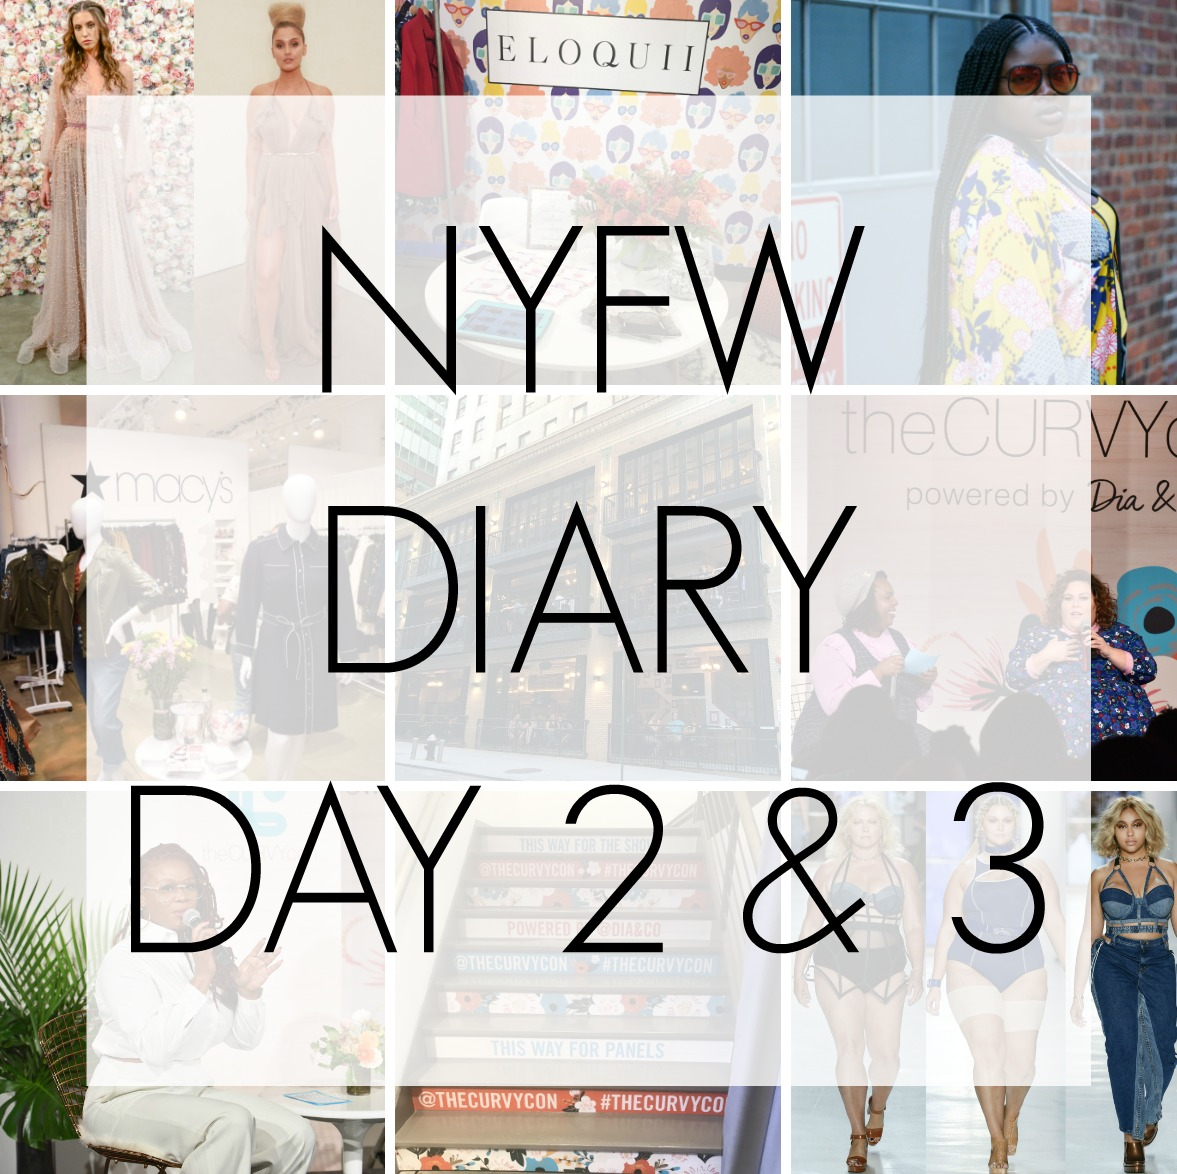 NYFW Diary Day 2 & 3 : Why you need a Partner in Chic